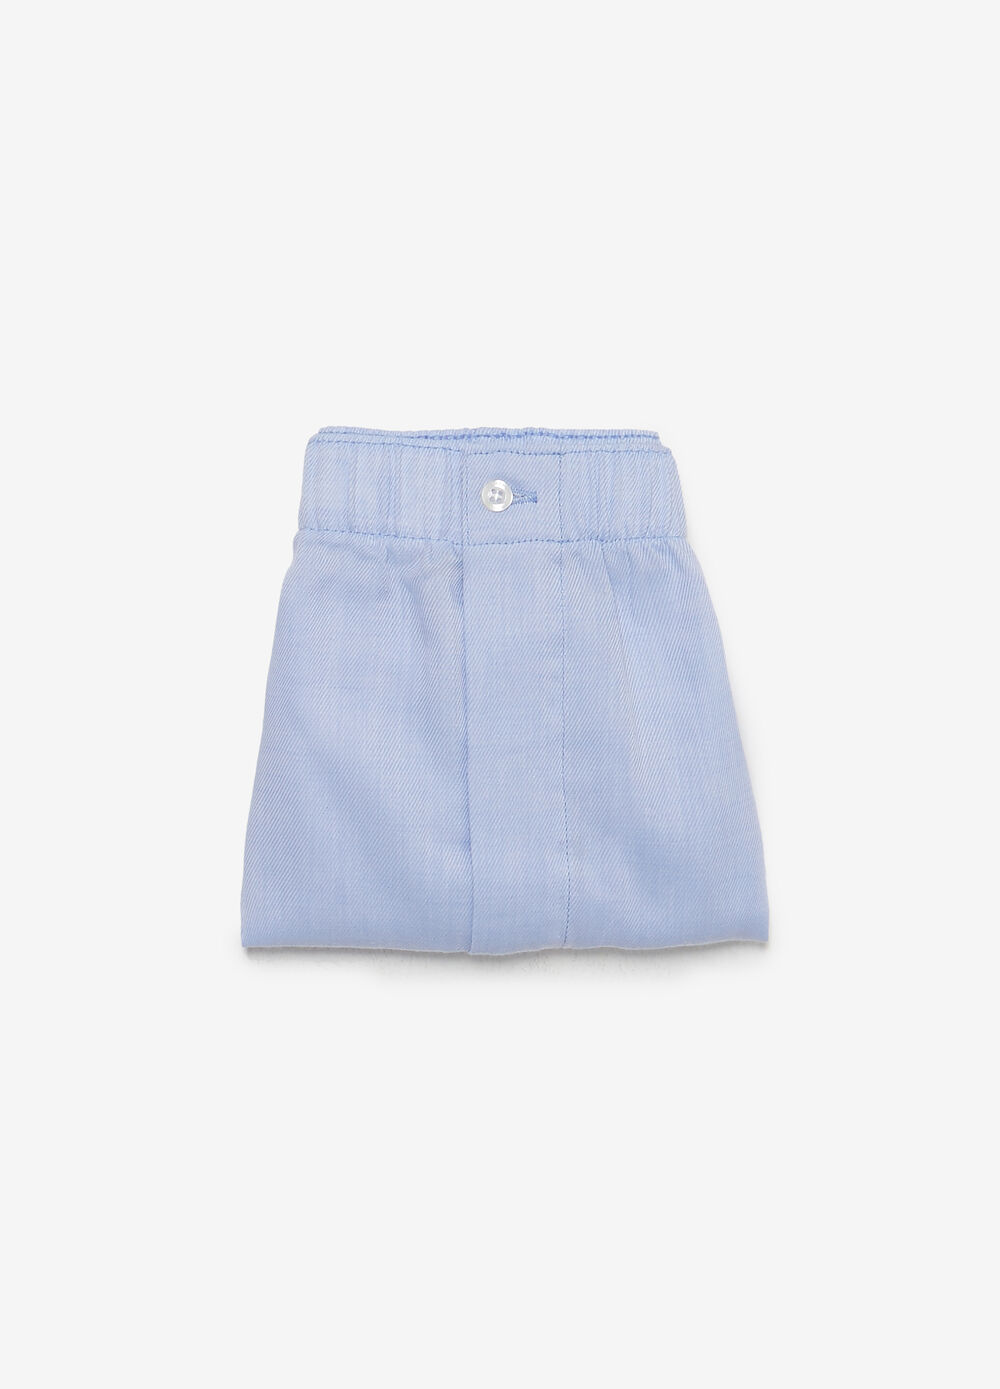 Cotton blend canvas boxers with elasticated waistband